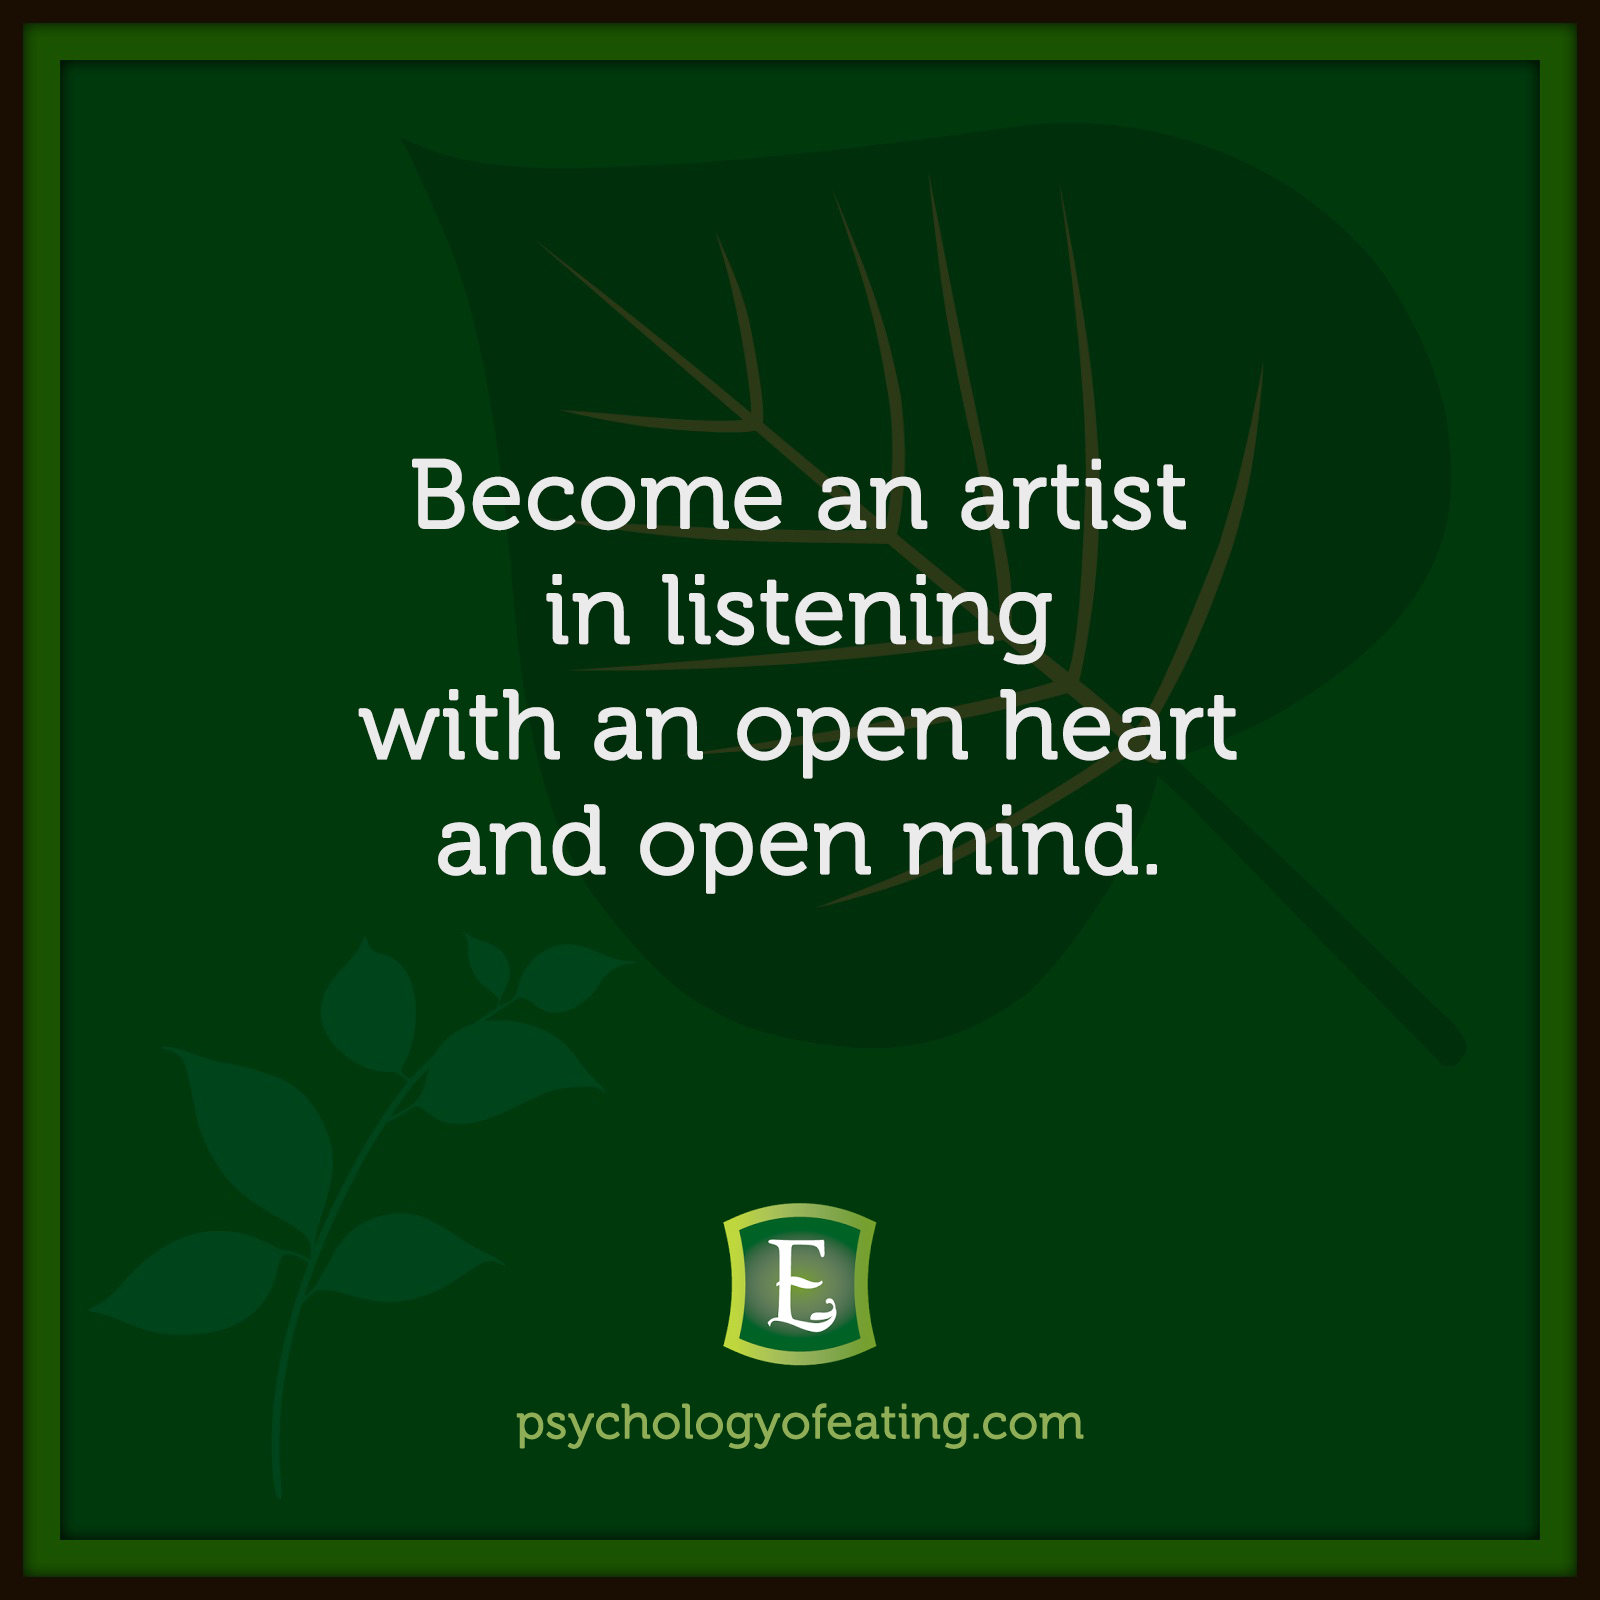 Become an artist in listening with an open heart and open mind. #health #nutrition #eatingpsychology #IPE